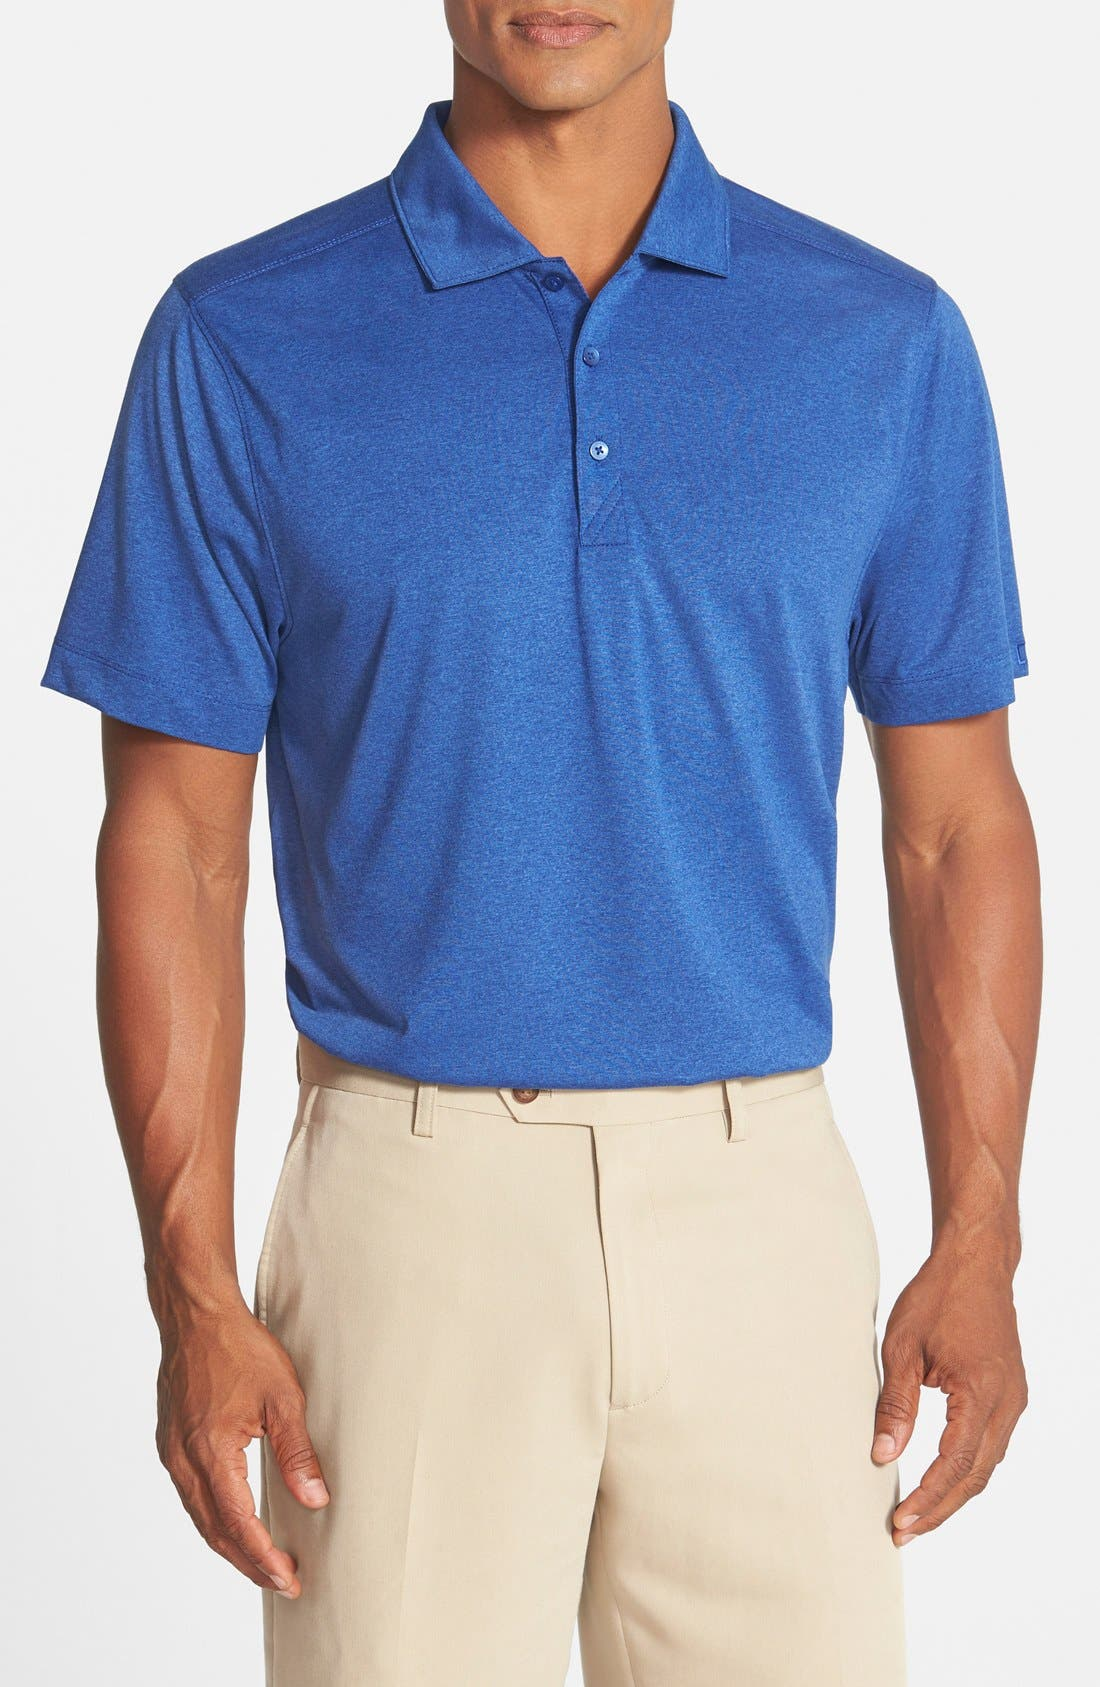 Main Image - Cutter & Buck 'Chelan' DryTec Polo (Online Only)